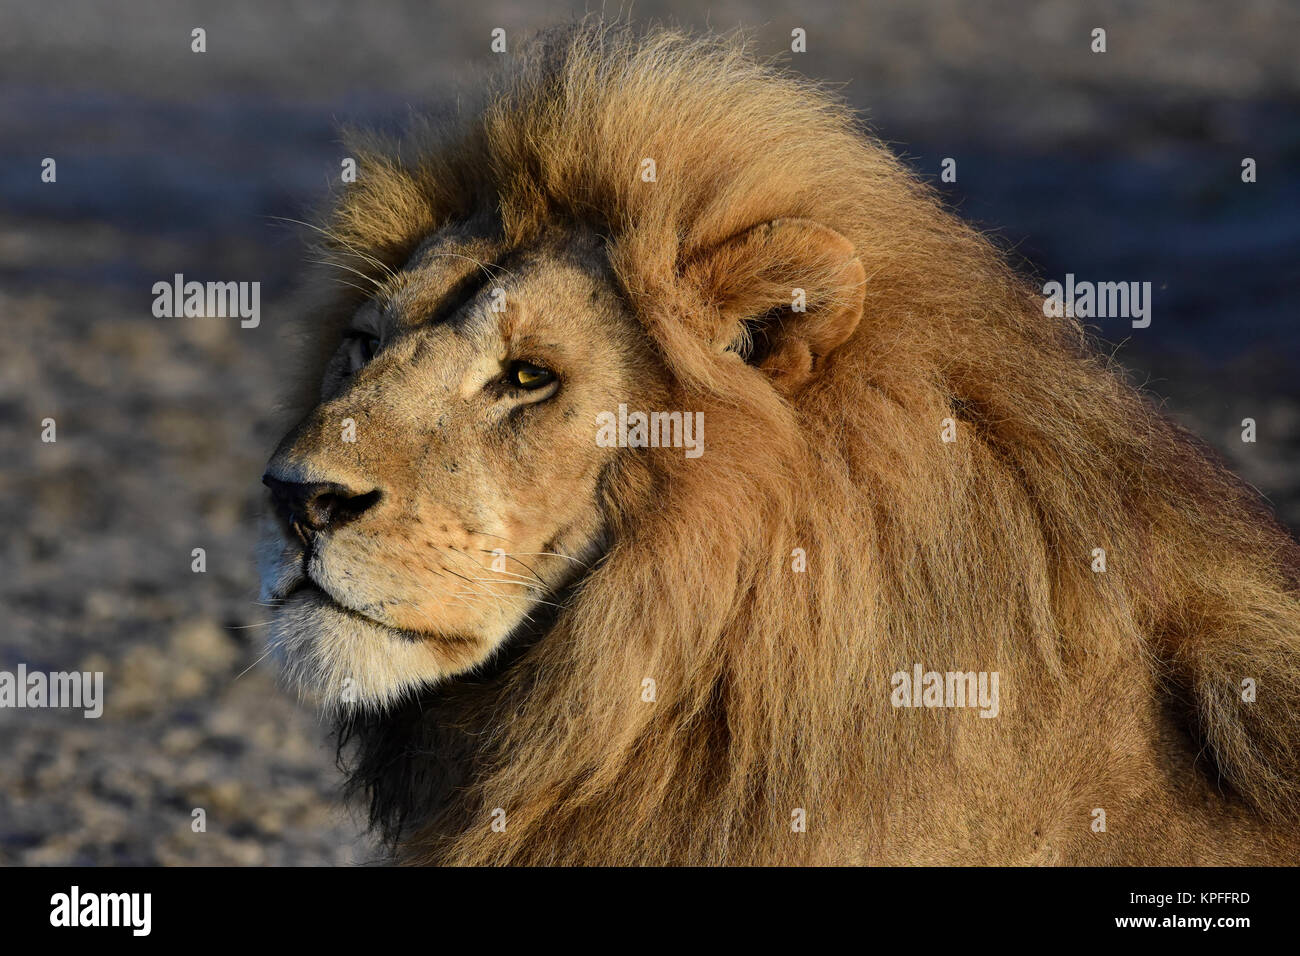 Wildlife sightseeing in one of the prime wildlife destinations on earht -- Serengeti, Tanzania. Huge maned lion - Stock Image